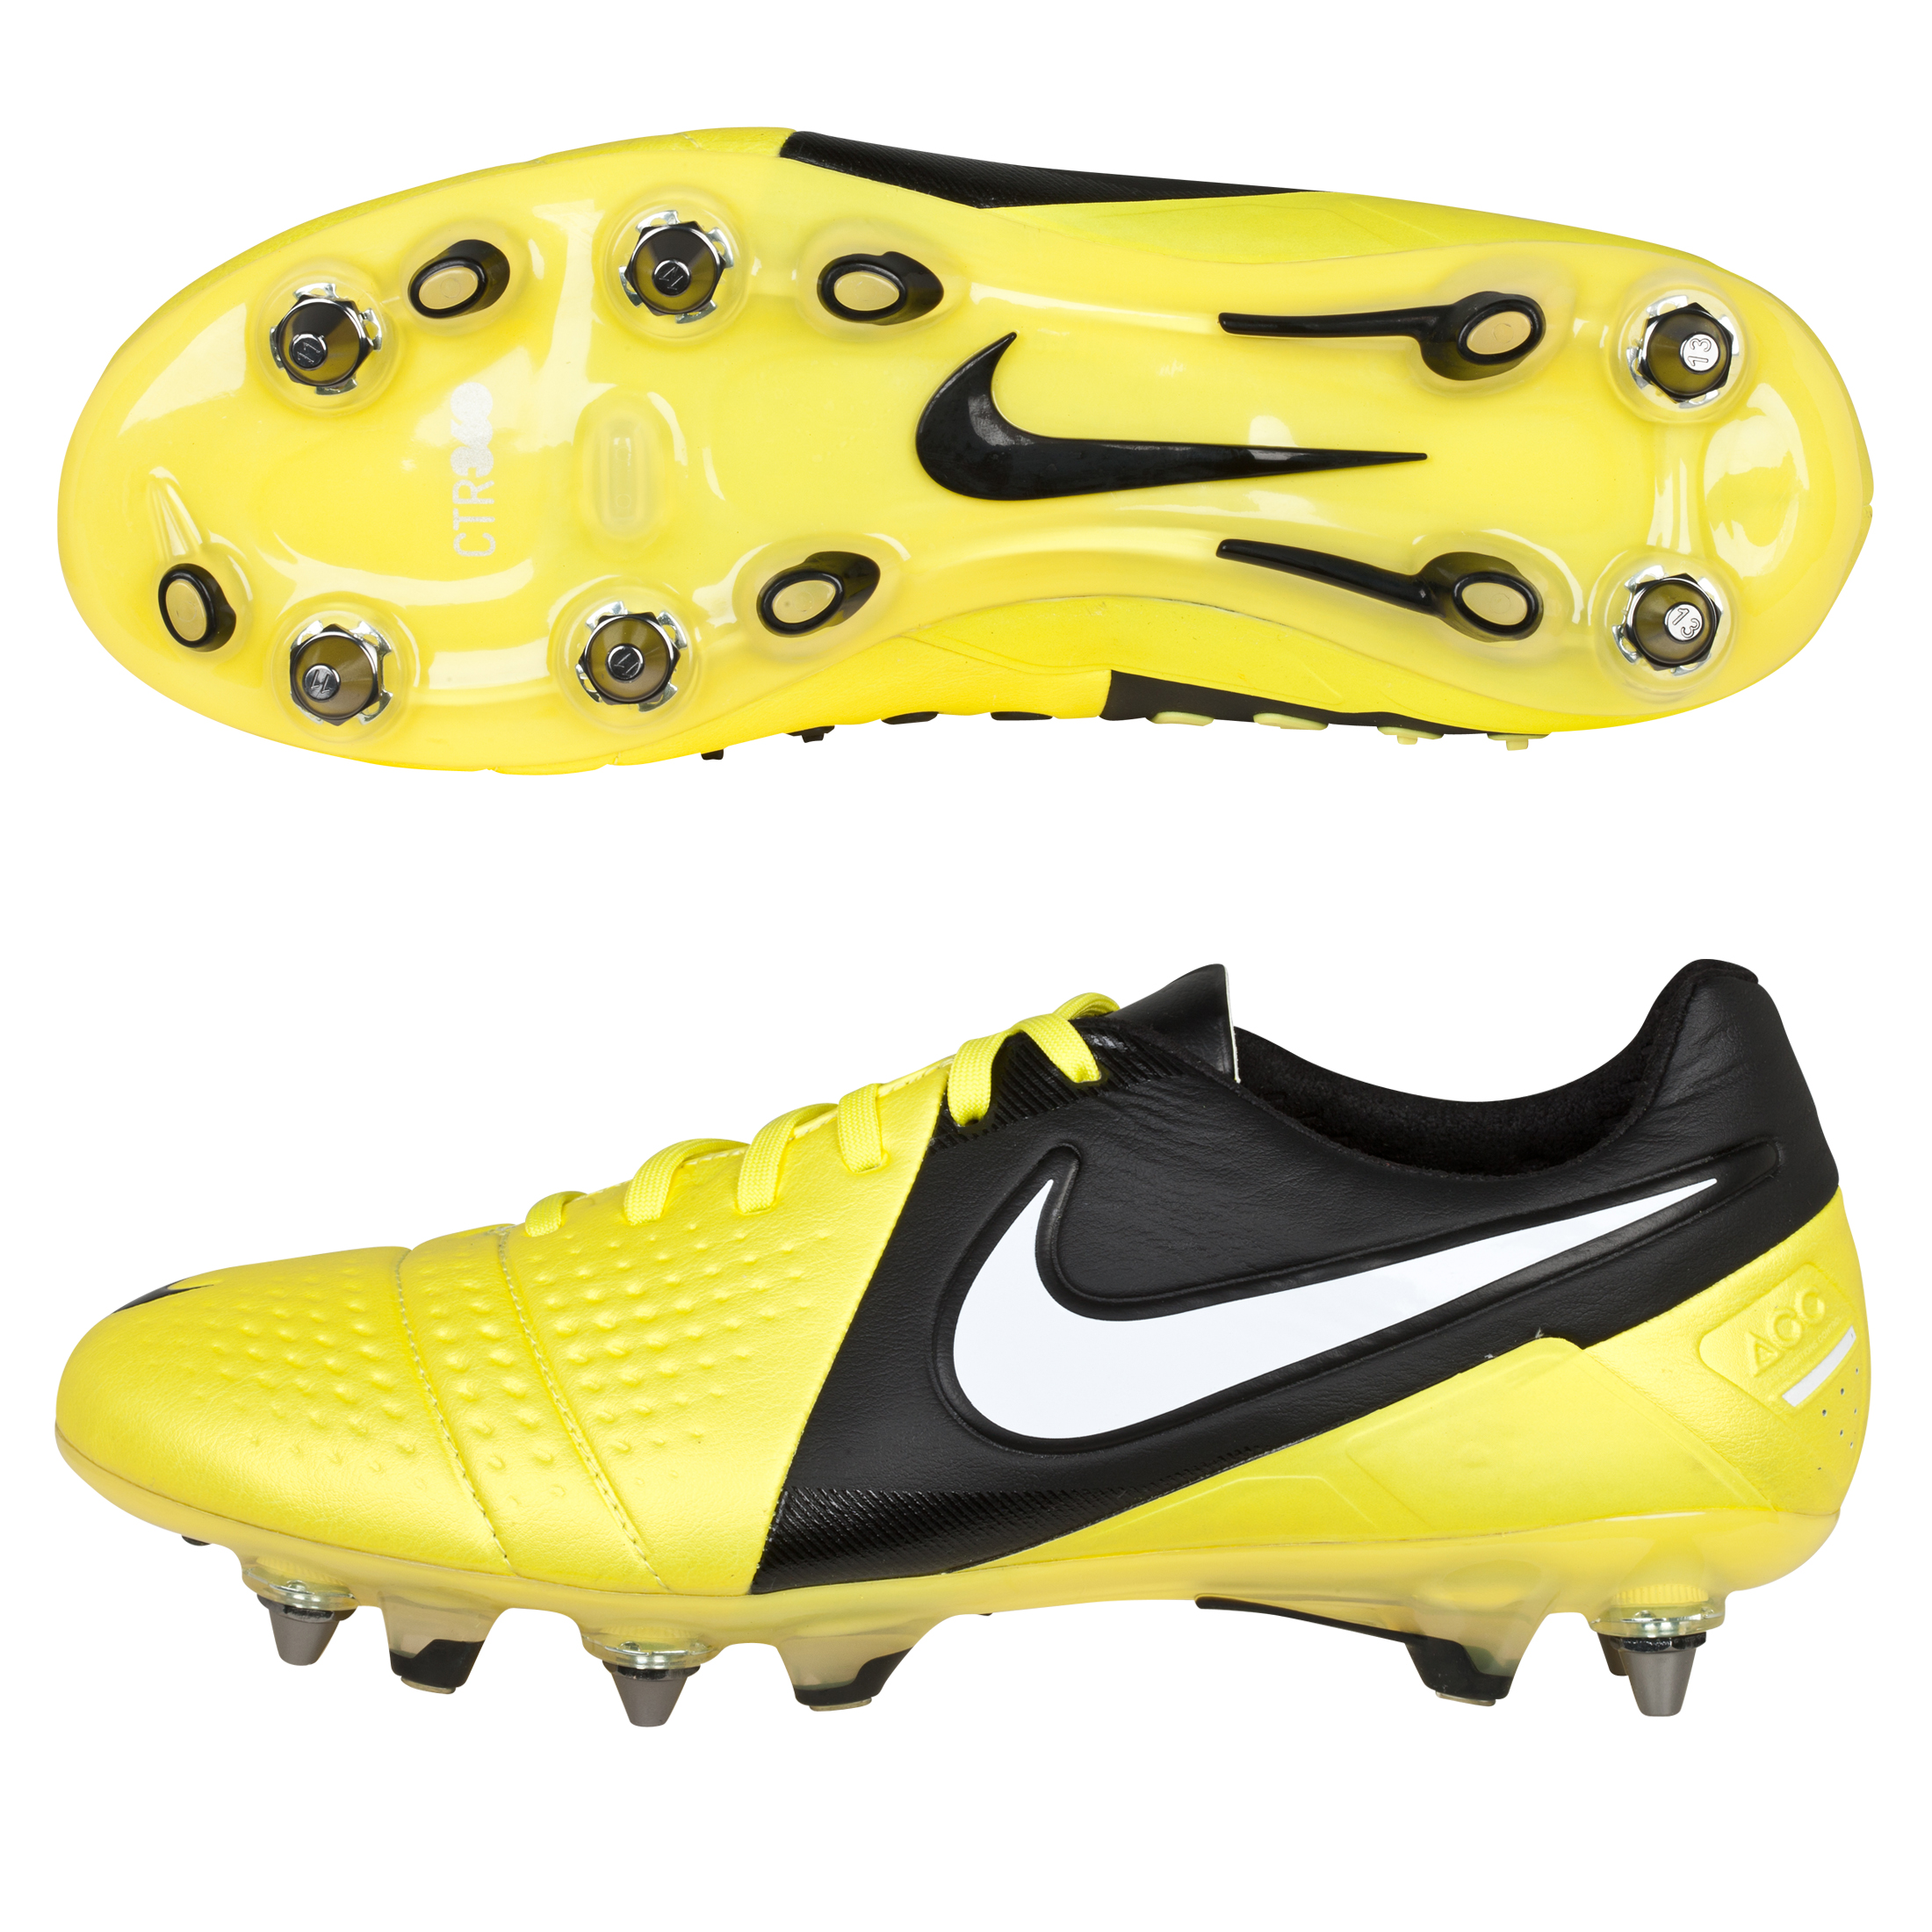 Nike CTR360 Maestri III SG-Pro Football Boots - Sonic Yellow/White/Black